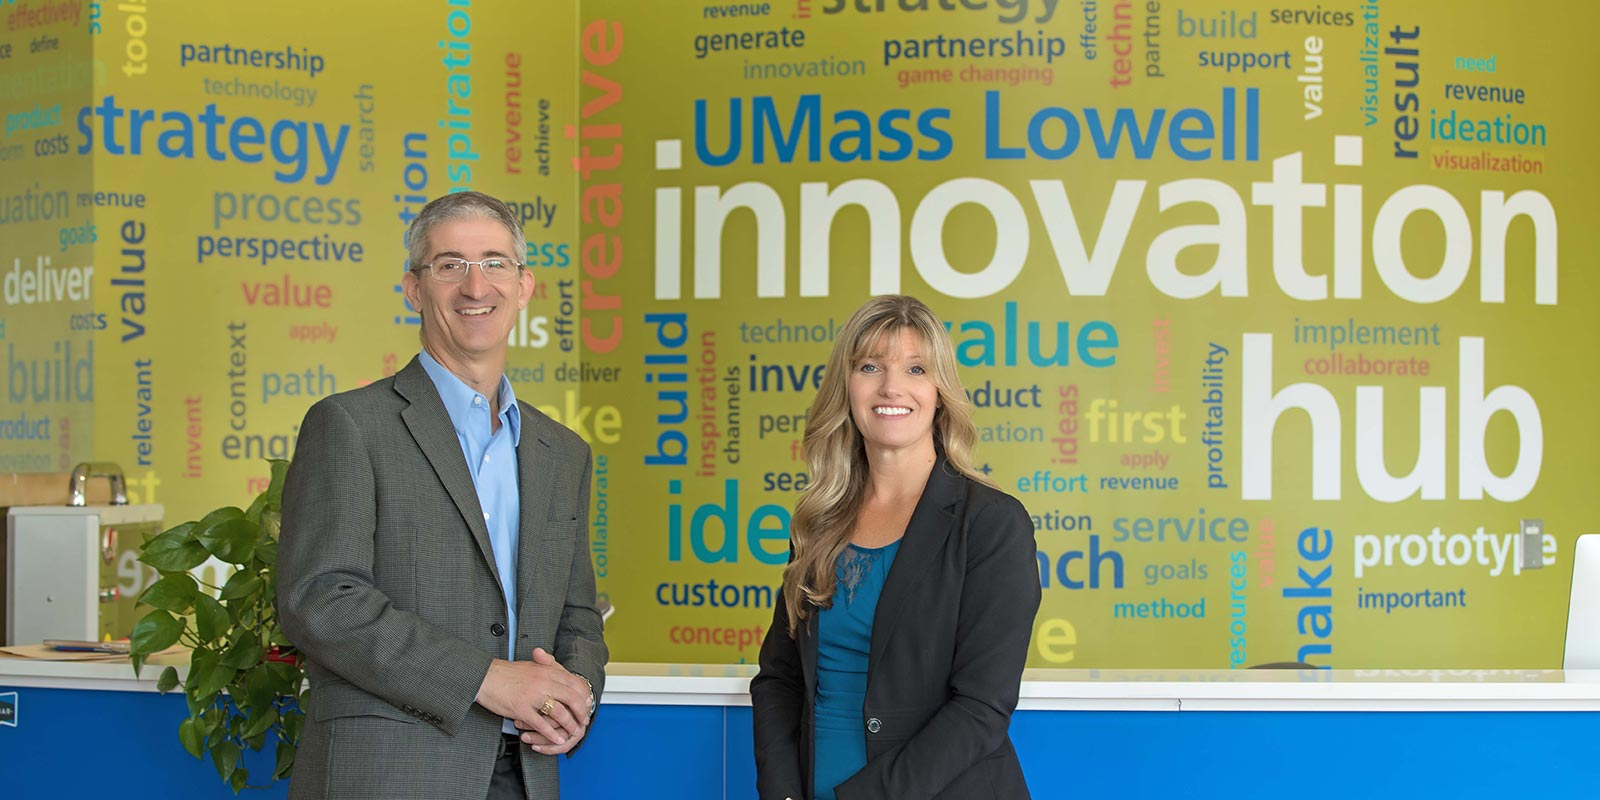 Innovation Hub leadership: Tom O'Donnell, Lisa Armstrong